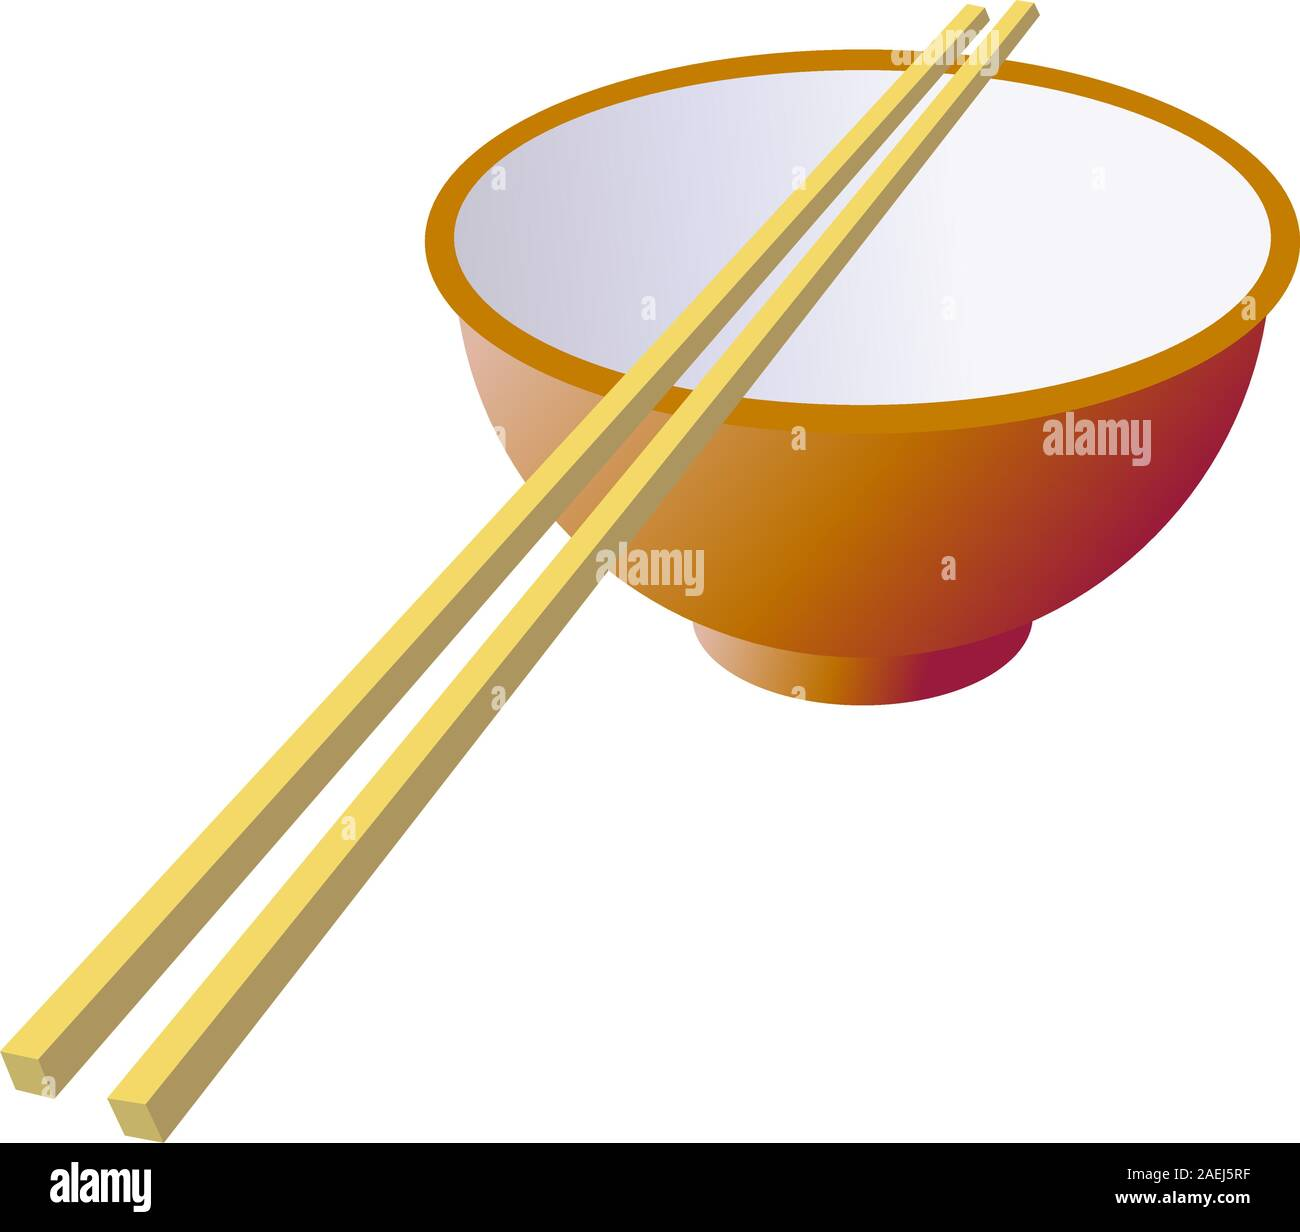 Ceramic mug with wooden sticks. Vector illustration. Stock Vector